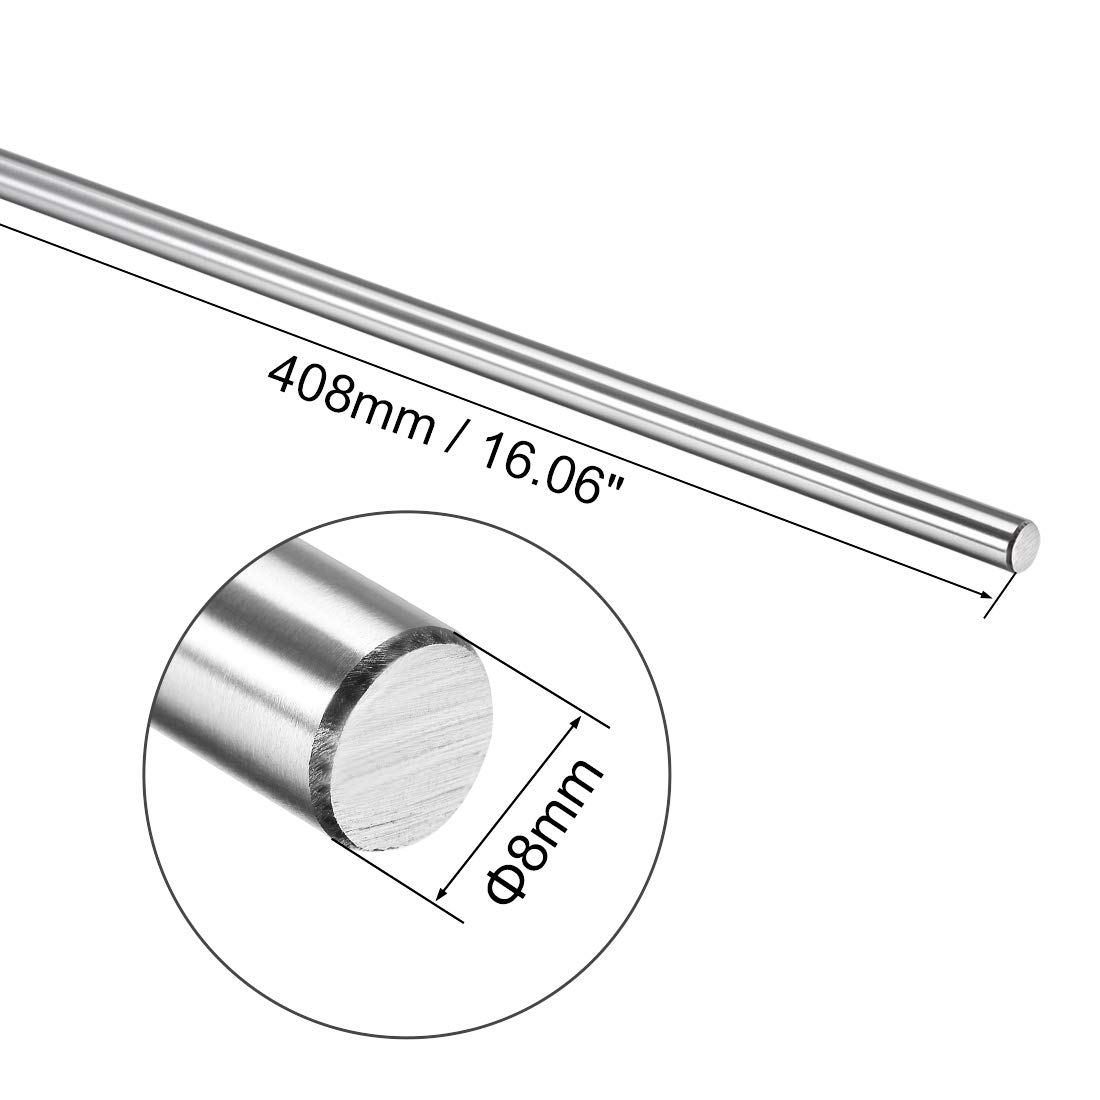 sourcing map 6mm x 301mm Hardened Rod Chrome Plated Linear Motion Shaft//Guide 2 Pcs